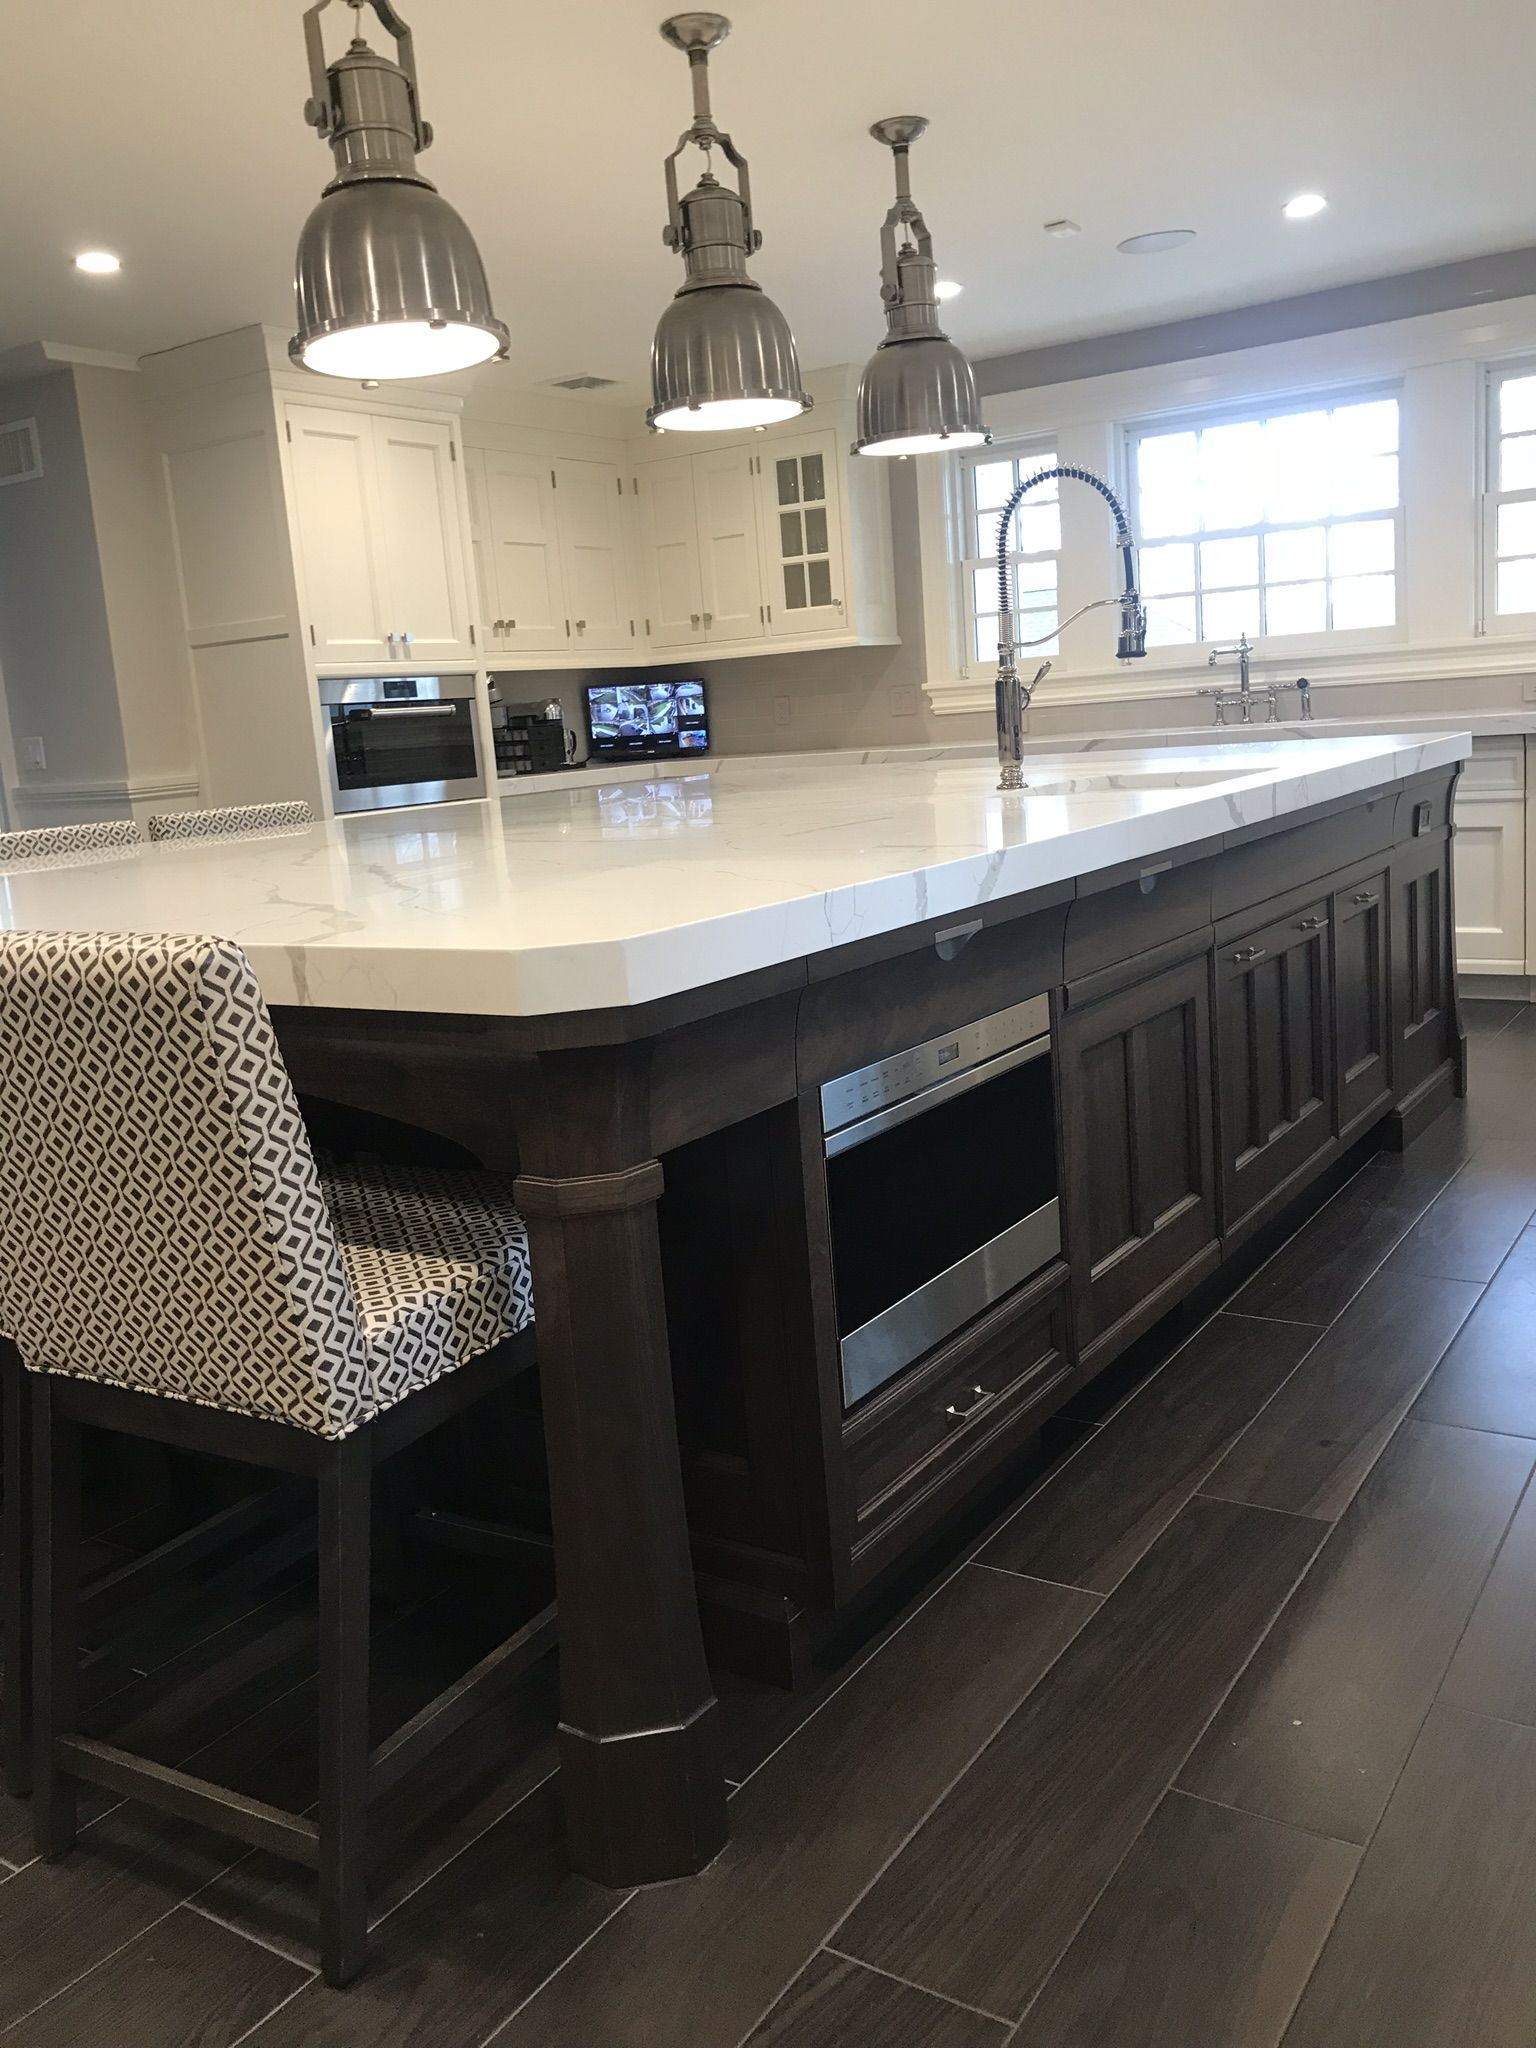 Ruttcabinetry Distinguishes This Kitchen From The Ordinary